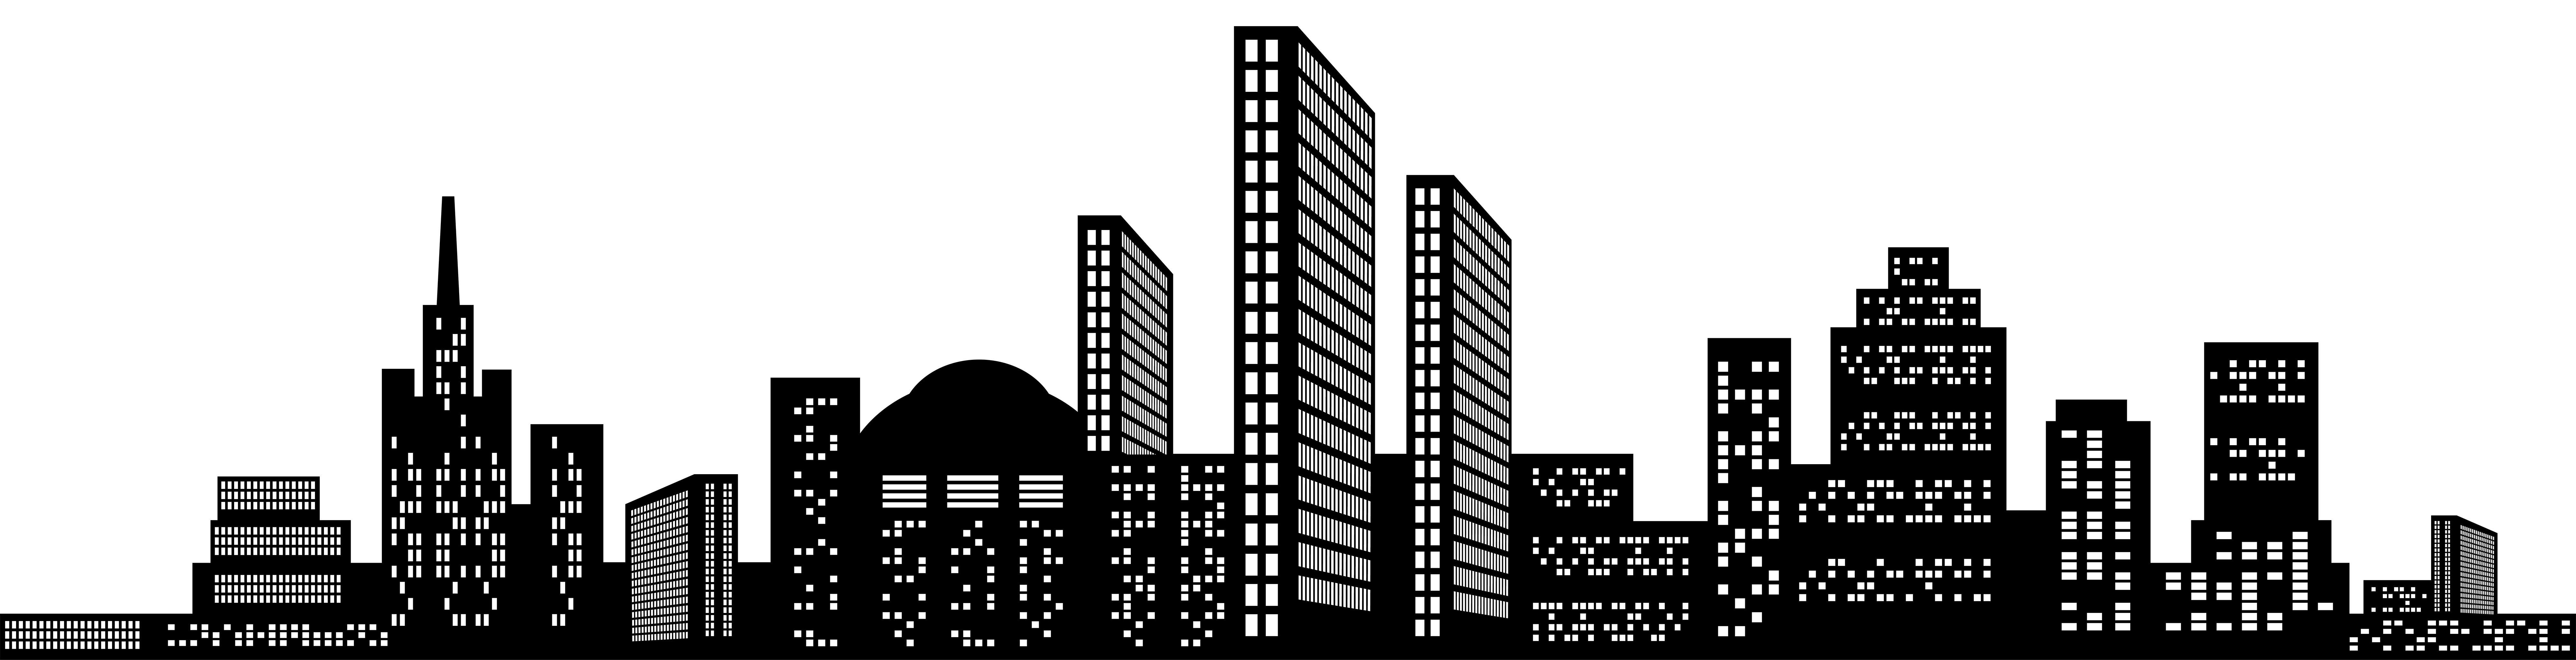 Comic book buildings clipart graphic transparent library 28+ Collection of Cityscape Clipart Images | High quality, free ... graphic transparent library